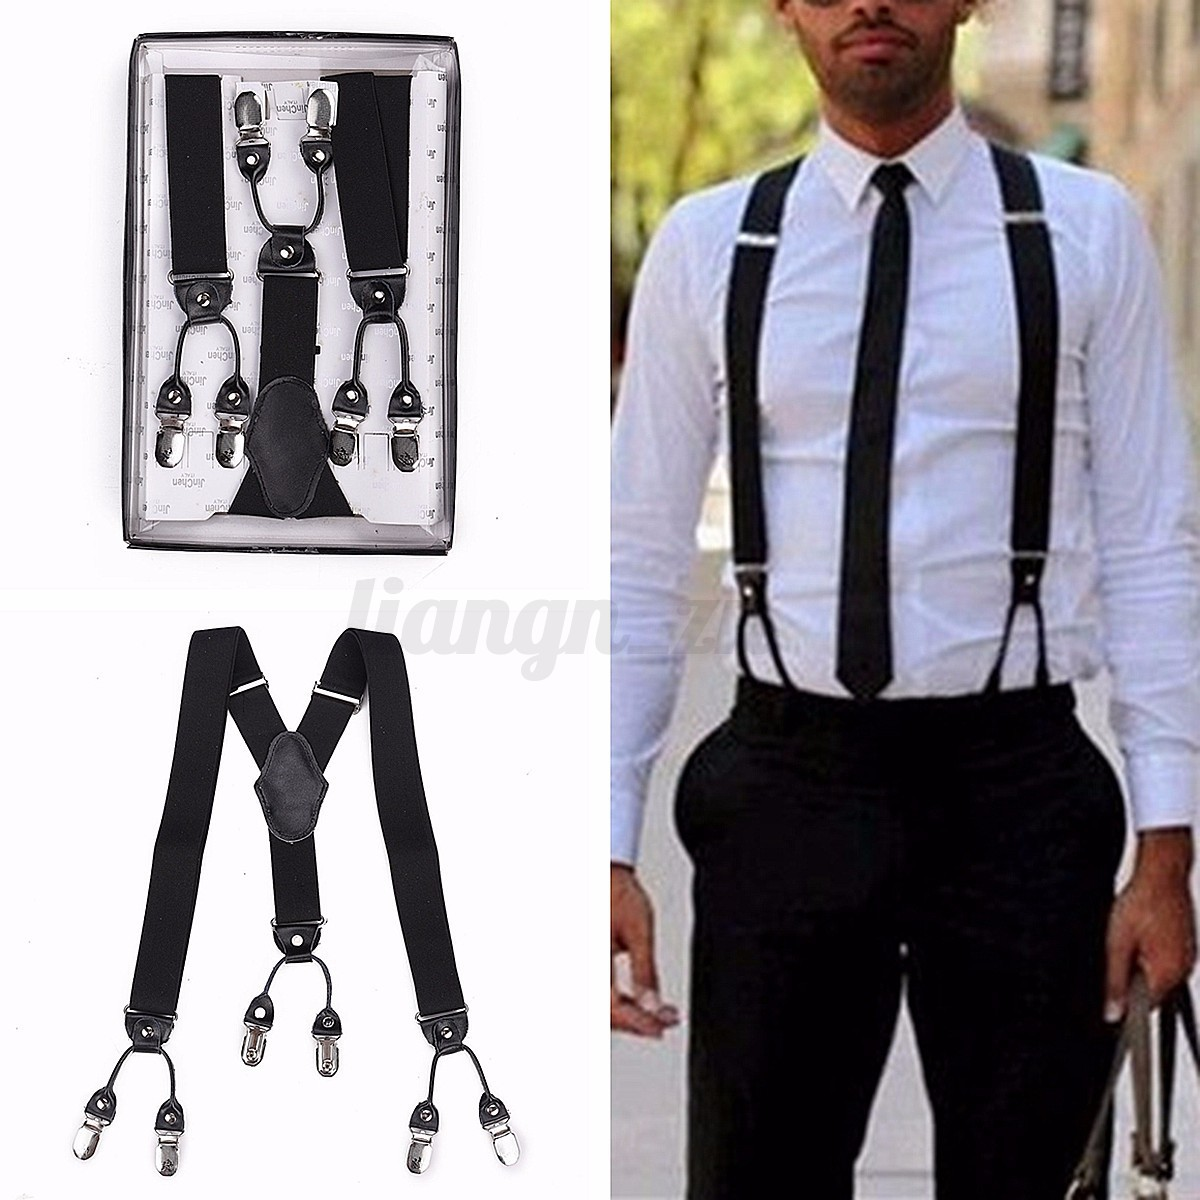 bretelle noir pantalon r glable y forme elastique 6 clips boucle suspender homme ebay. Black Bedroom Furniture Sets. Home Design Ideas